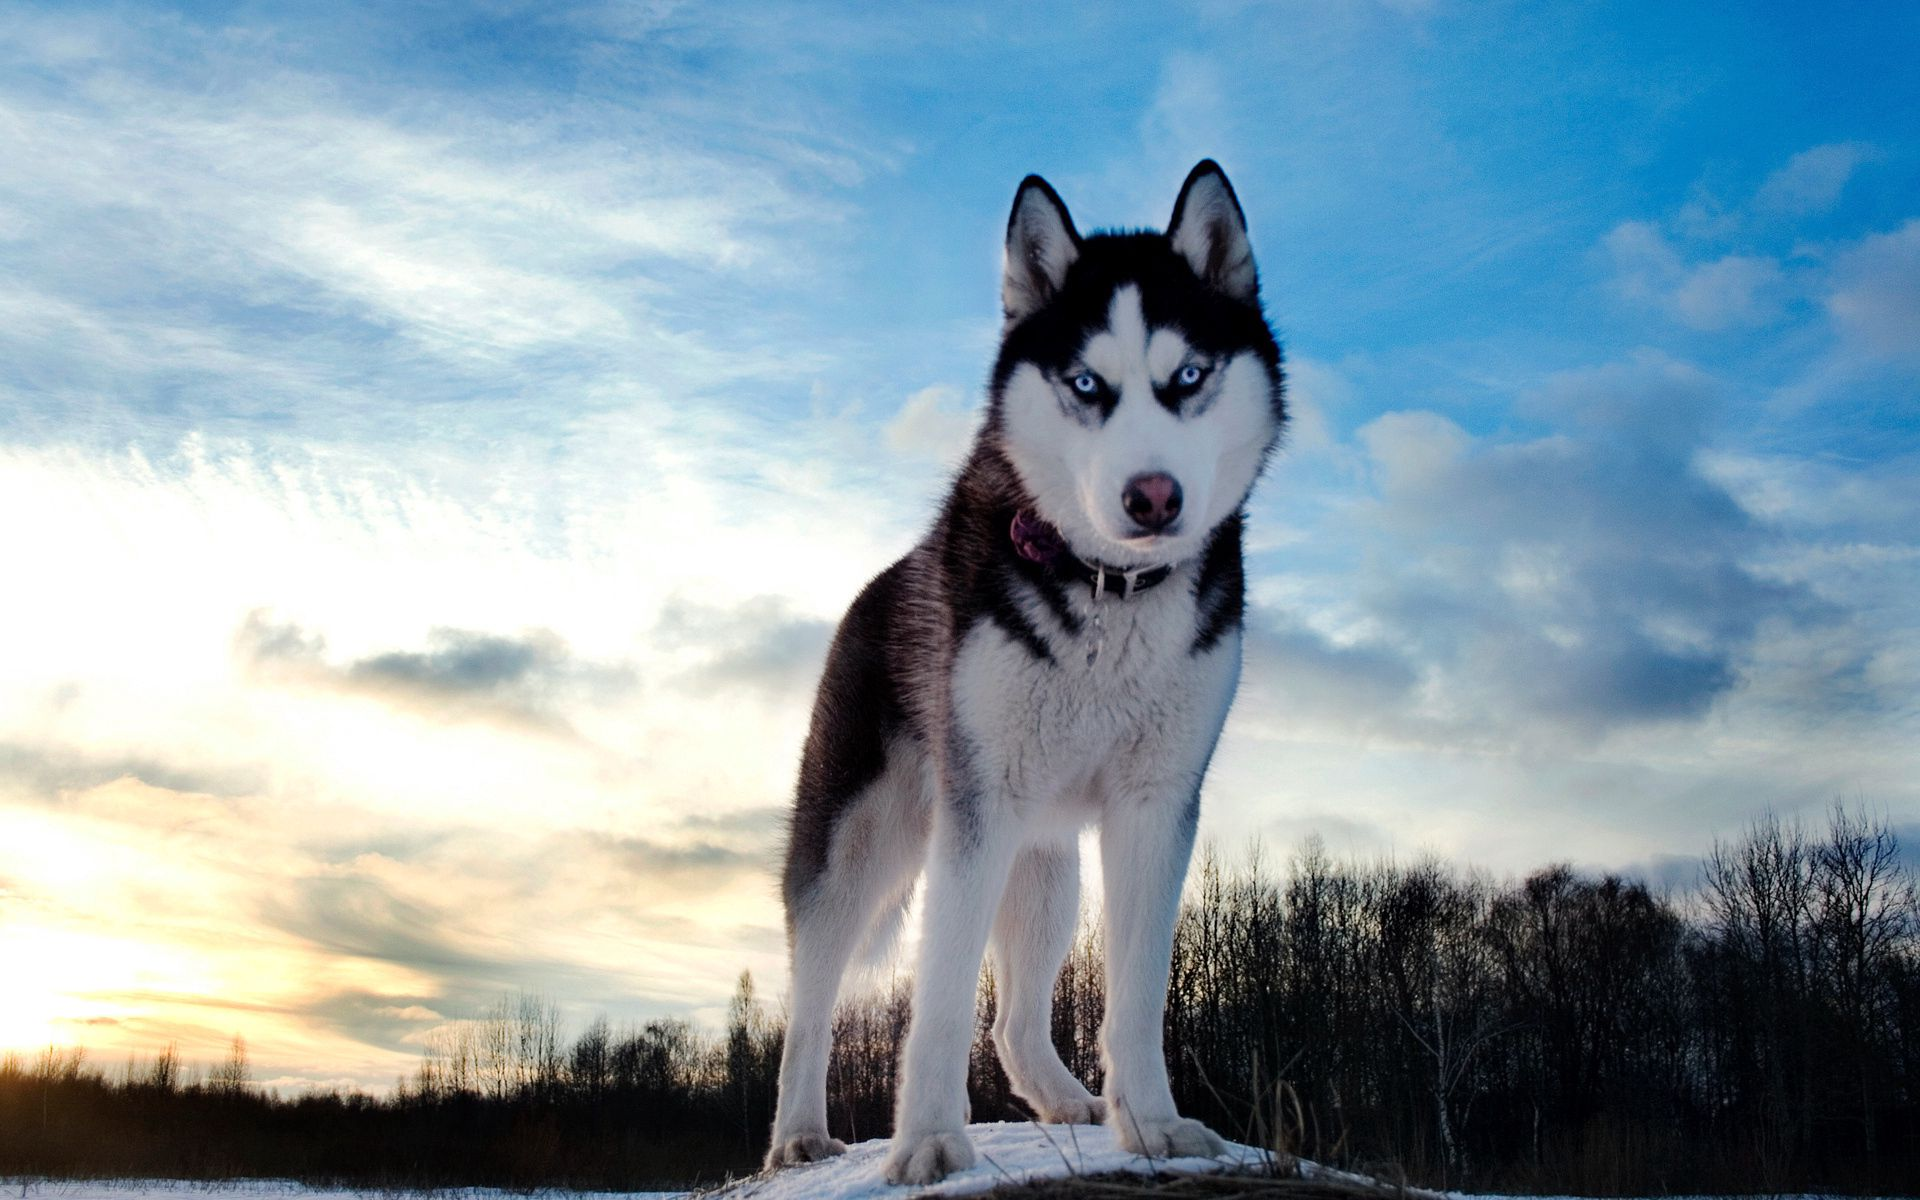 86721 download wallpaper Animals, Snow, Dog, Husky, Elevation screensavers and pictures for free